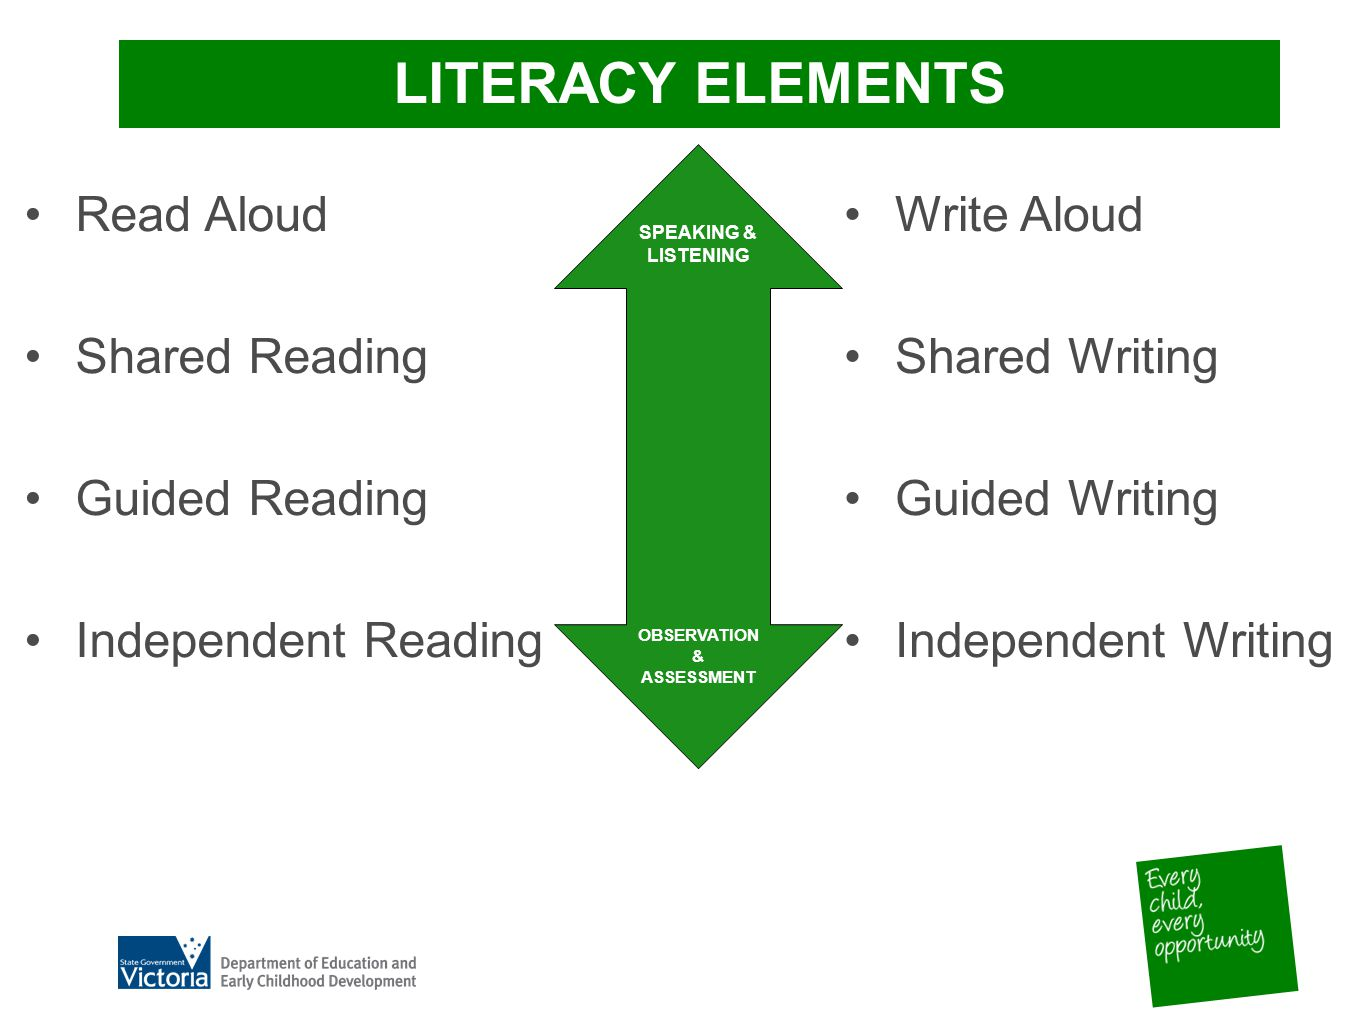 LITERACY ELEMENTS Read Aloud Shared Reading Guided Reading Independent Reading SPEAKING & LISTENING OBSERVATION & ASSESSMENT Write Aloud Shared Writing Guided Writing Independent Writing